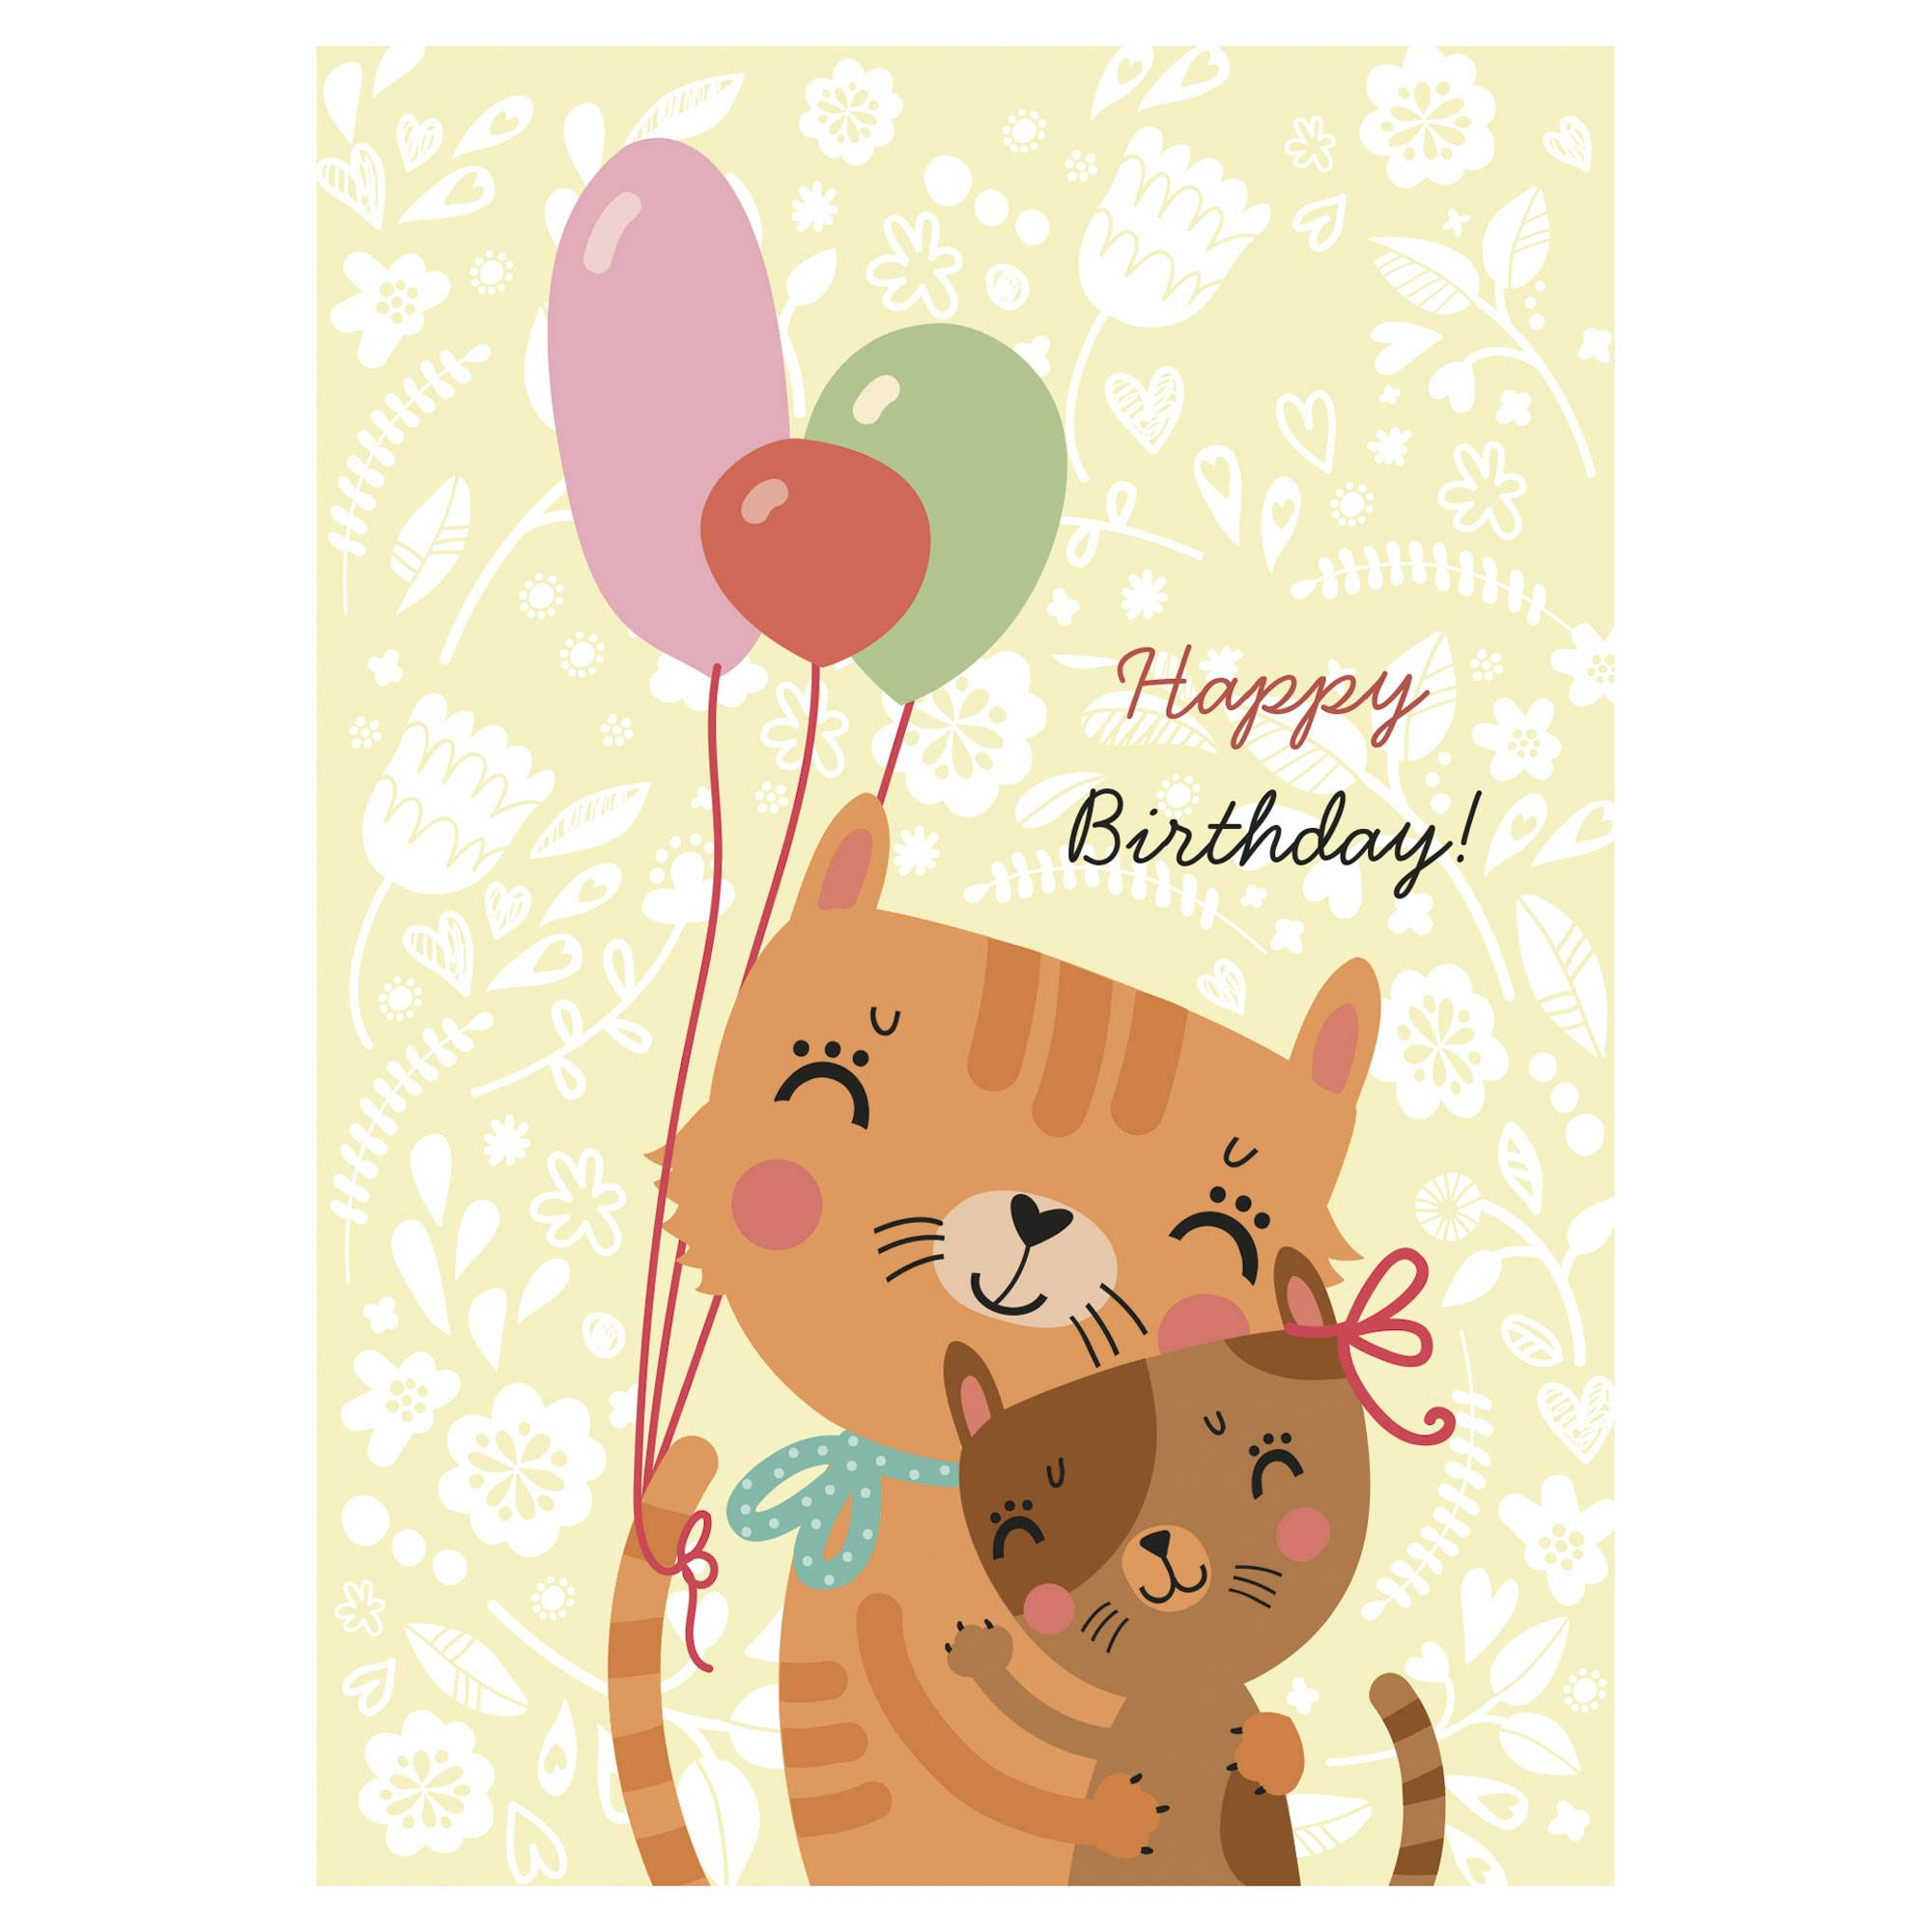 Remarkable Unicef Uk Market Unicef Charity Greeting Cards Childrens Funny Birthday Cards Online Alyptdamsfinfo